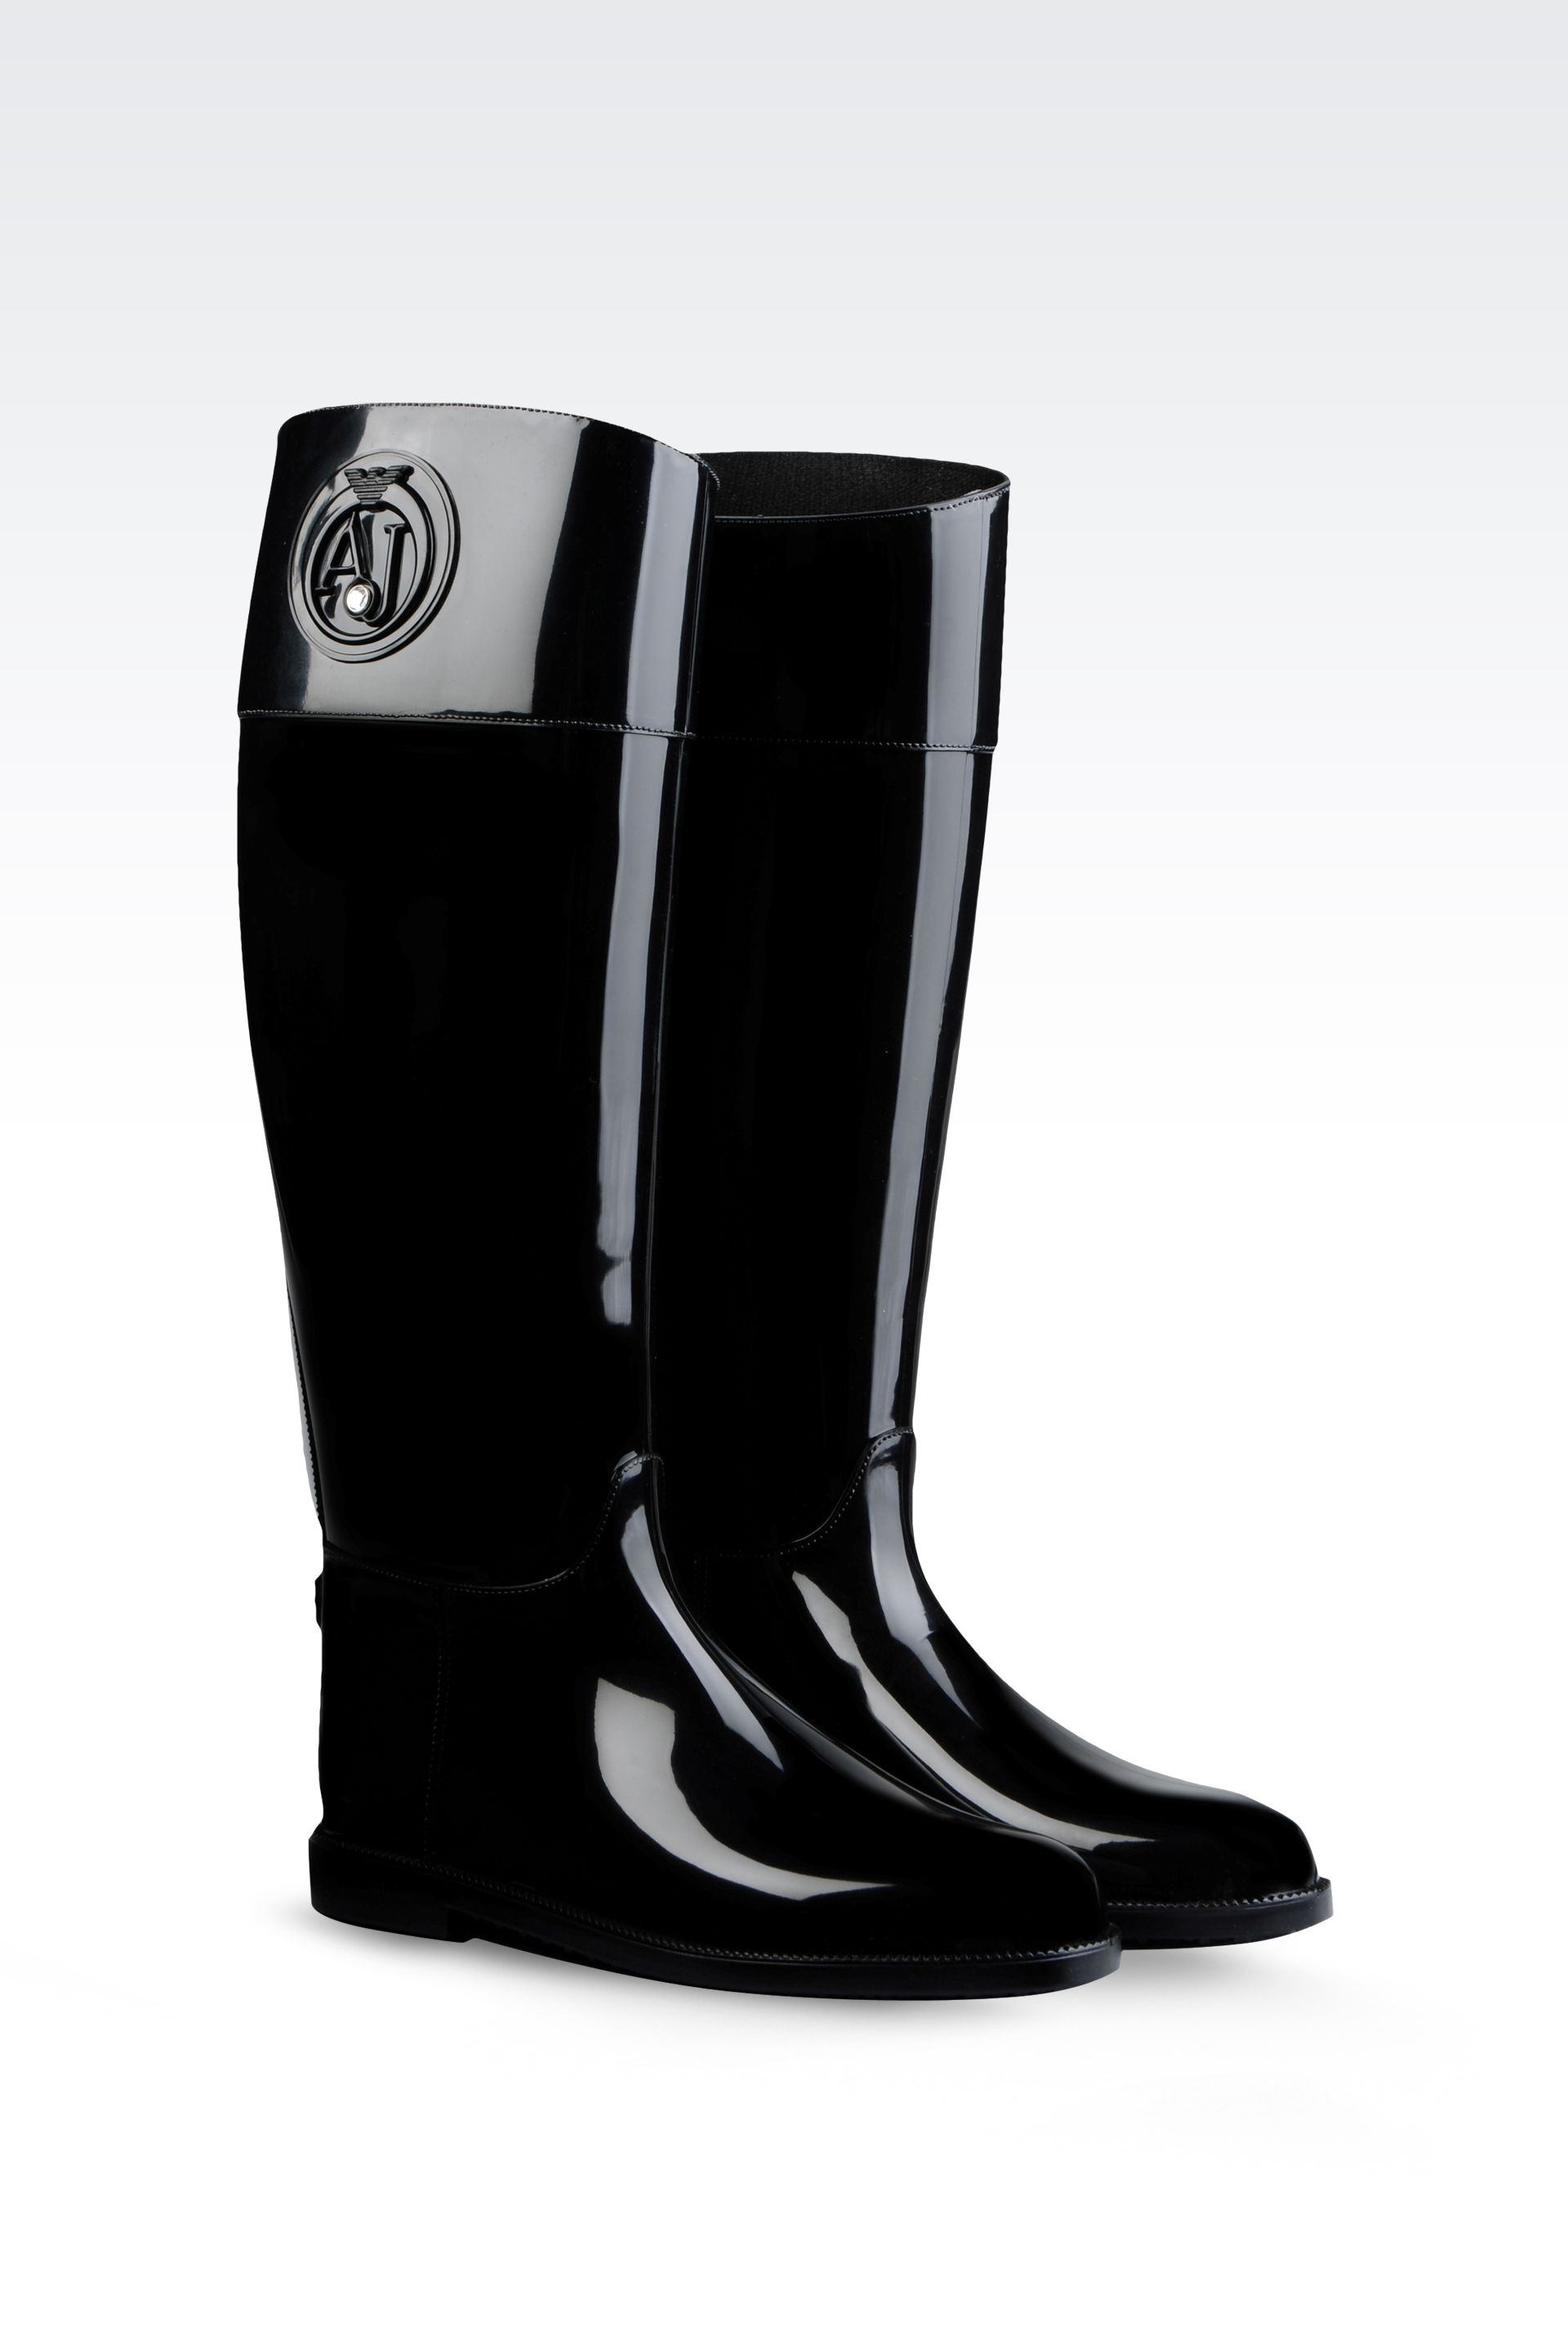 lyst armani jeans rubber rain boot in black. Black Bedroom Furniture Sets. Home Design Ideas